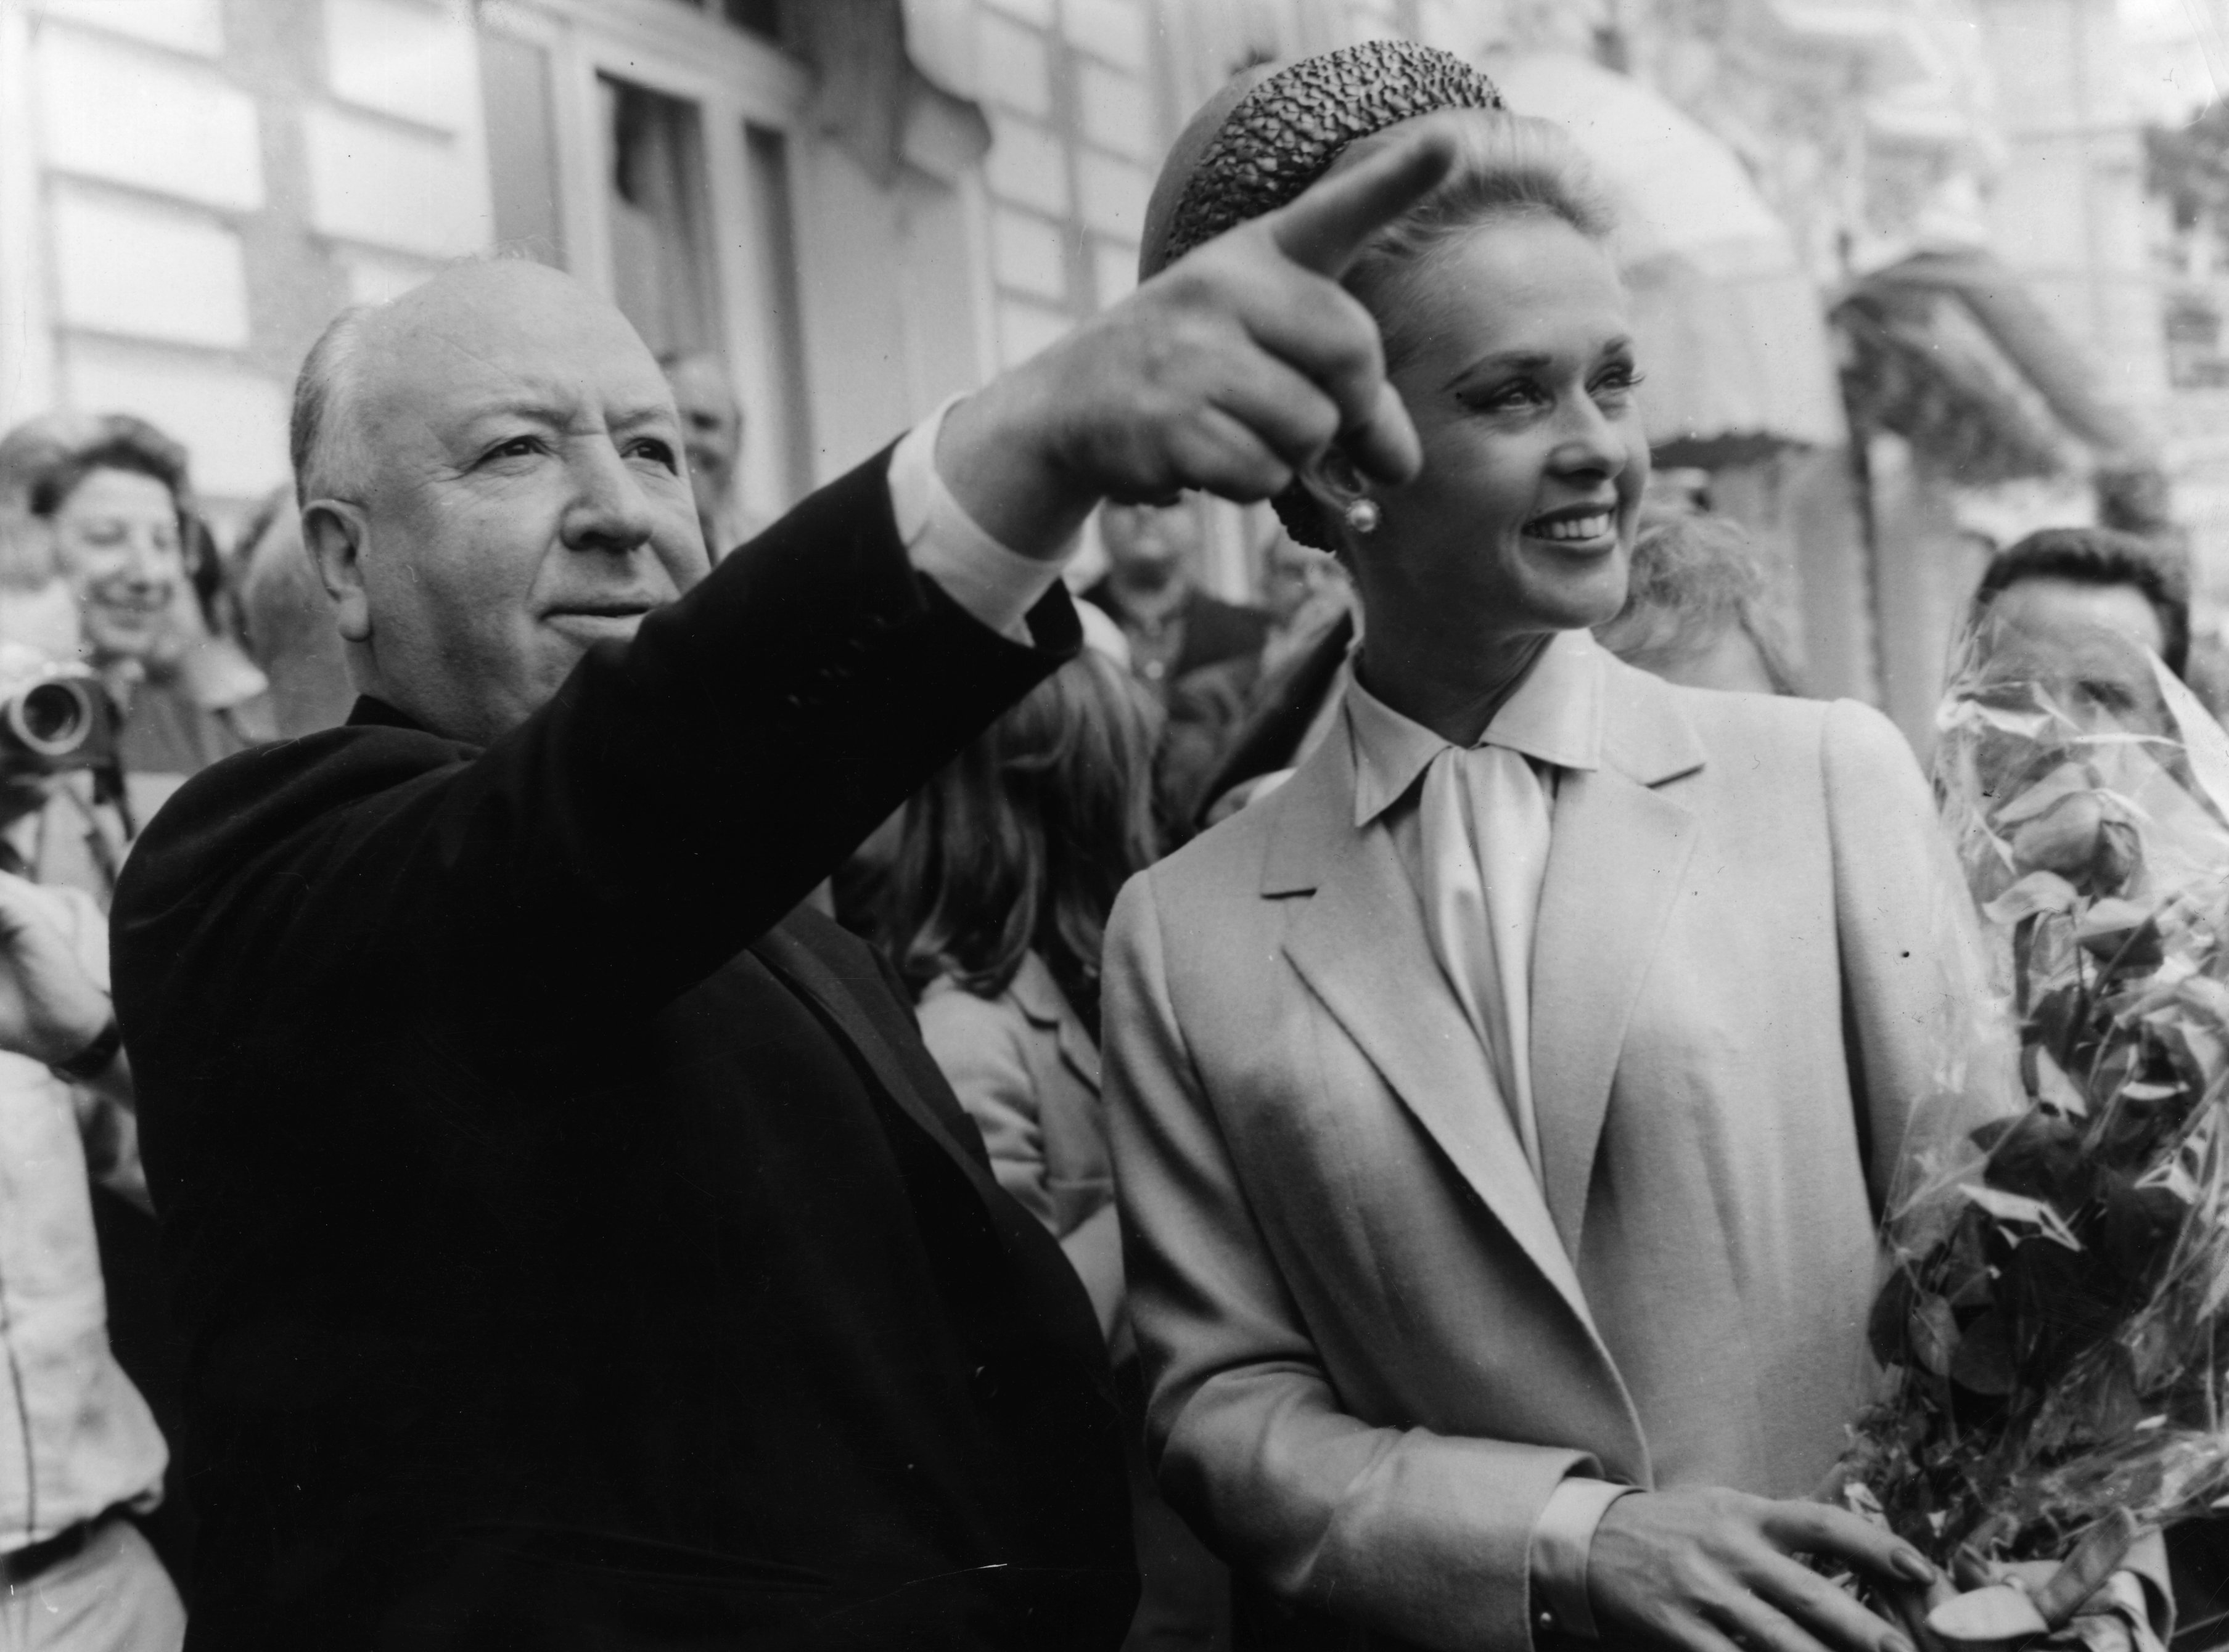 Alfred Hitchcock and American actress Tippi Hedren explore Cannes together after the premiere of his latest thriller 'The Birds' in which she plays the title role.   Source: Getty Images